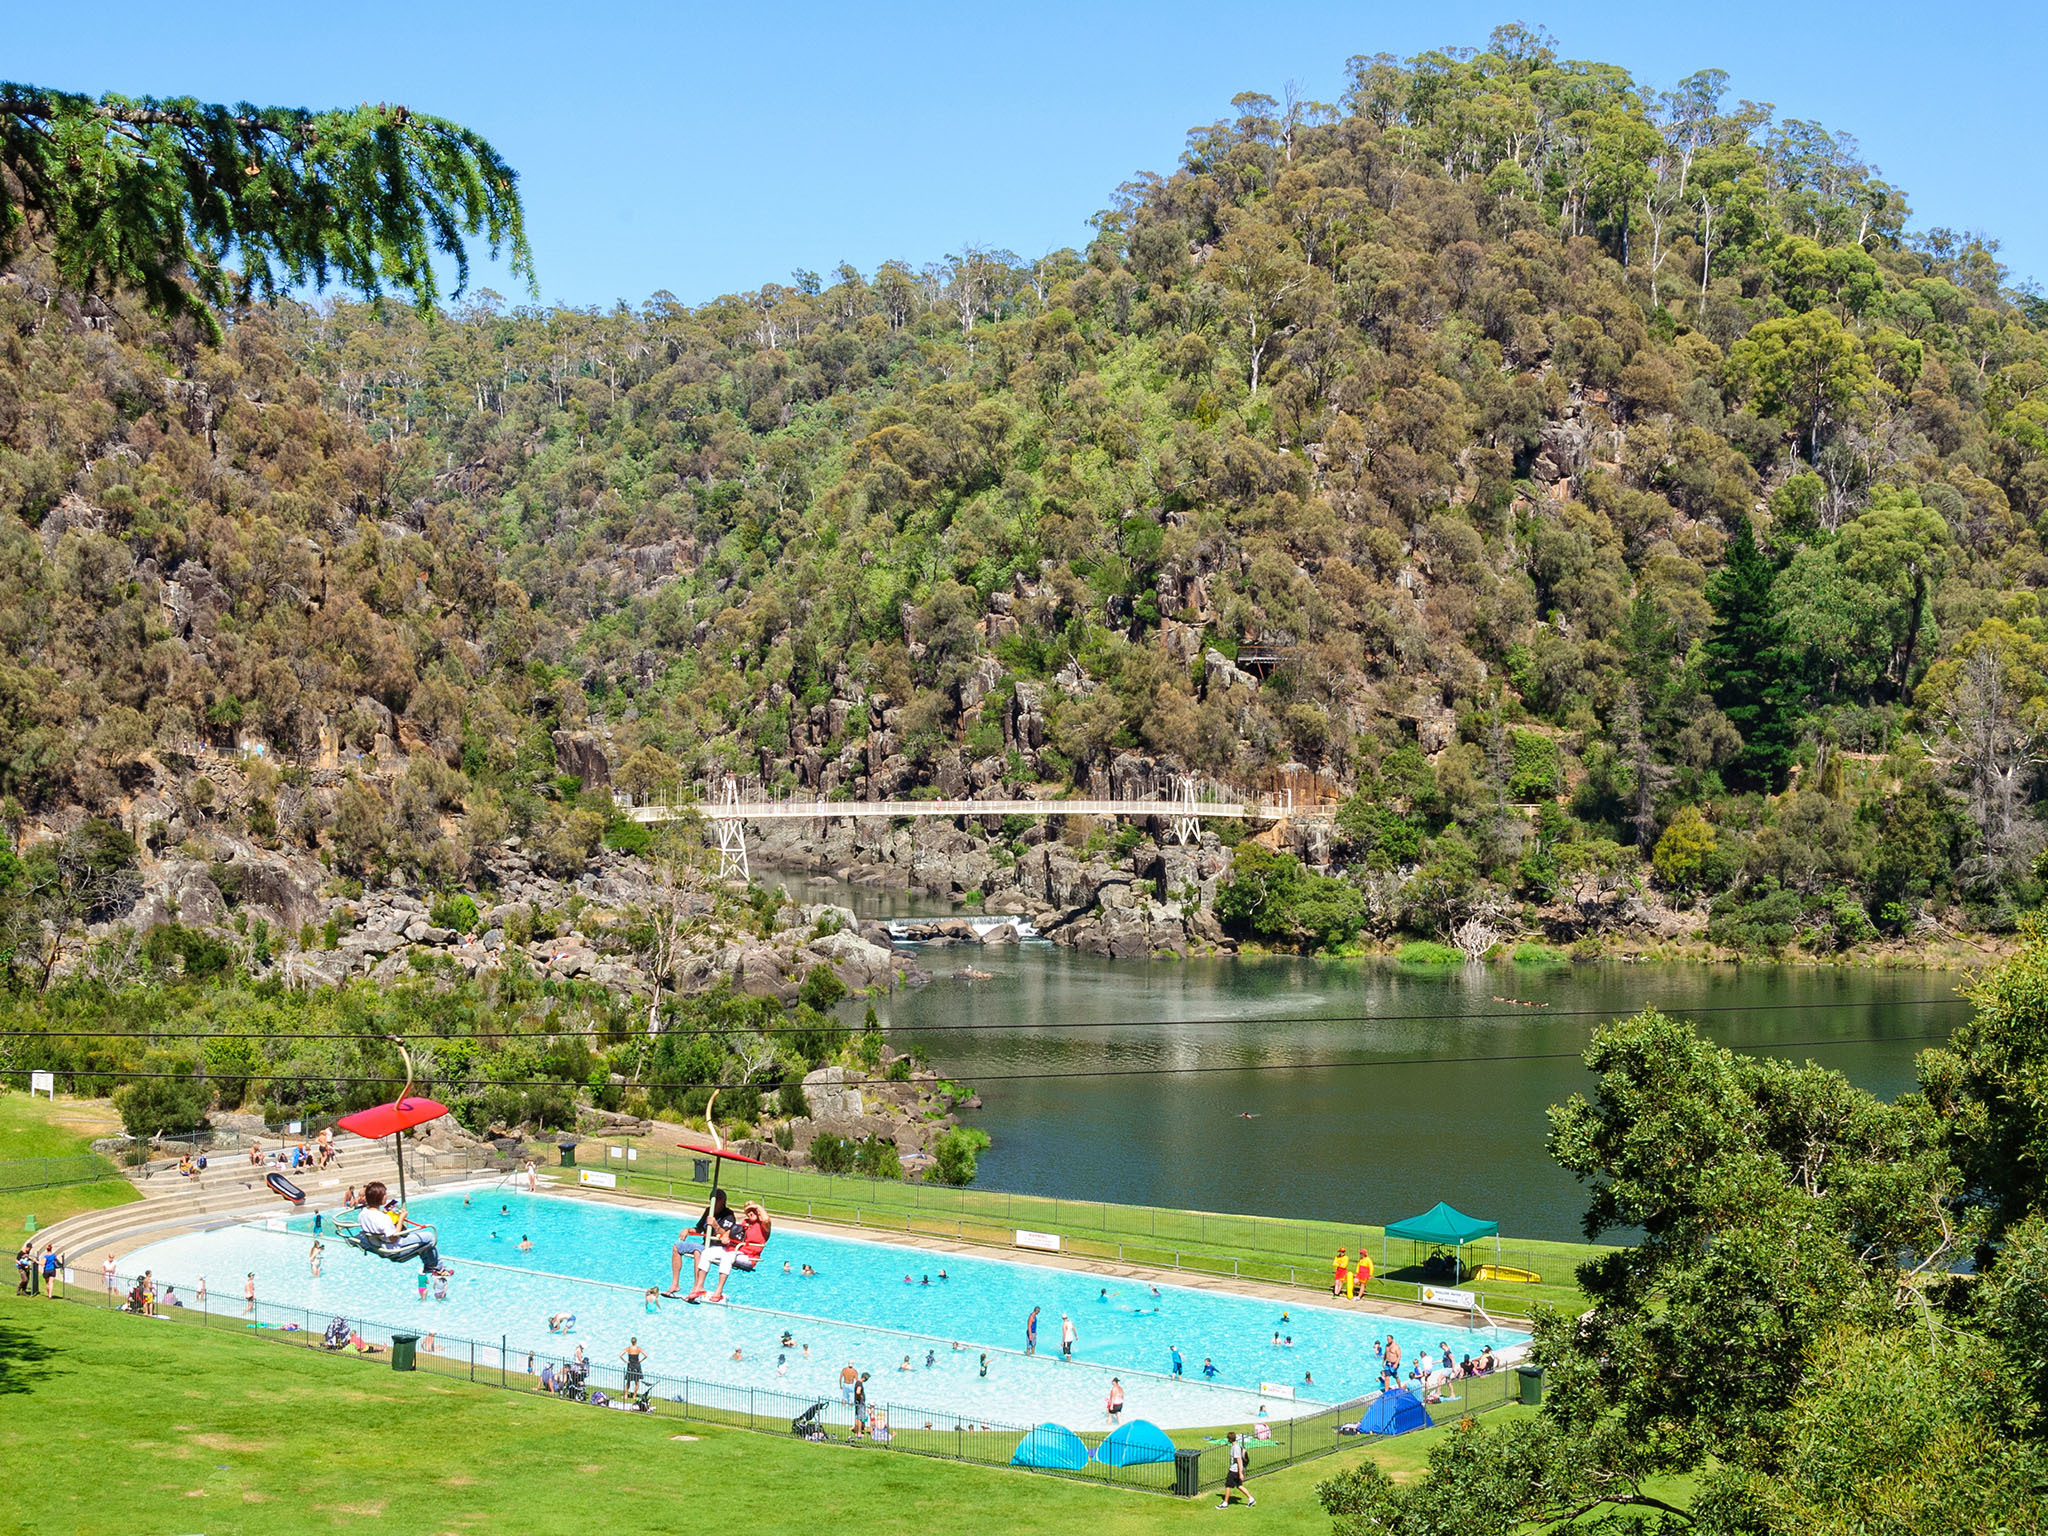 Best things to do in Launceston